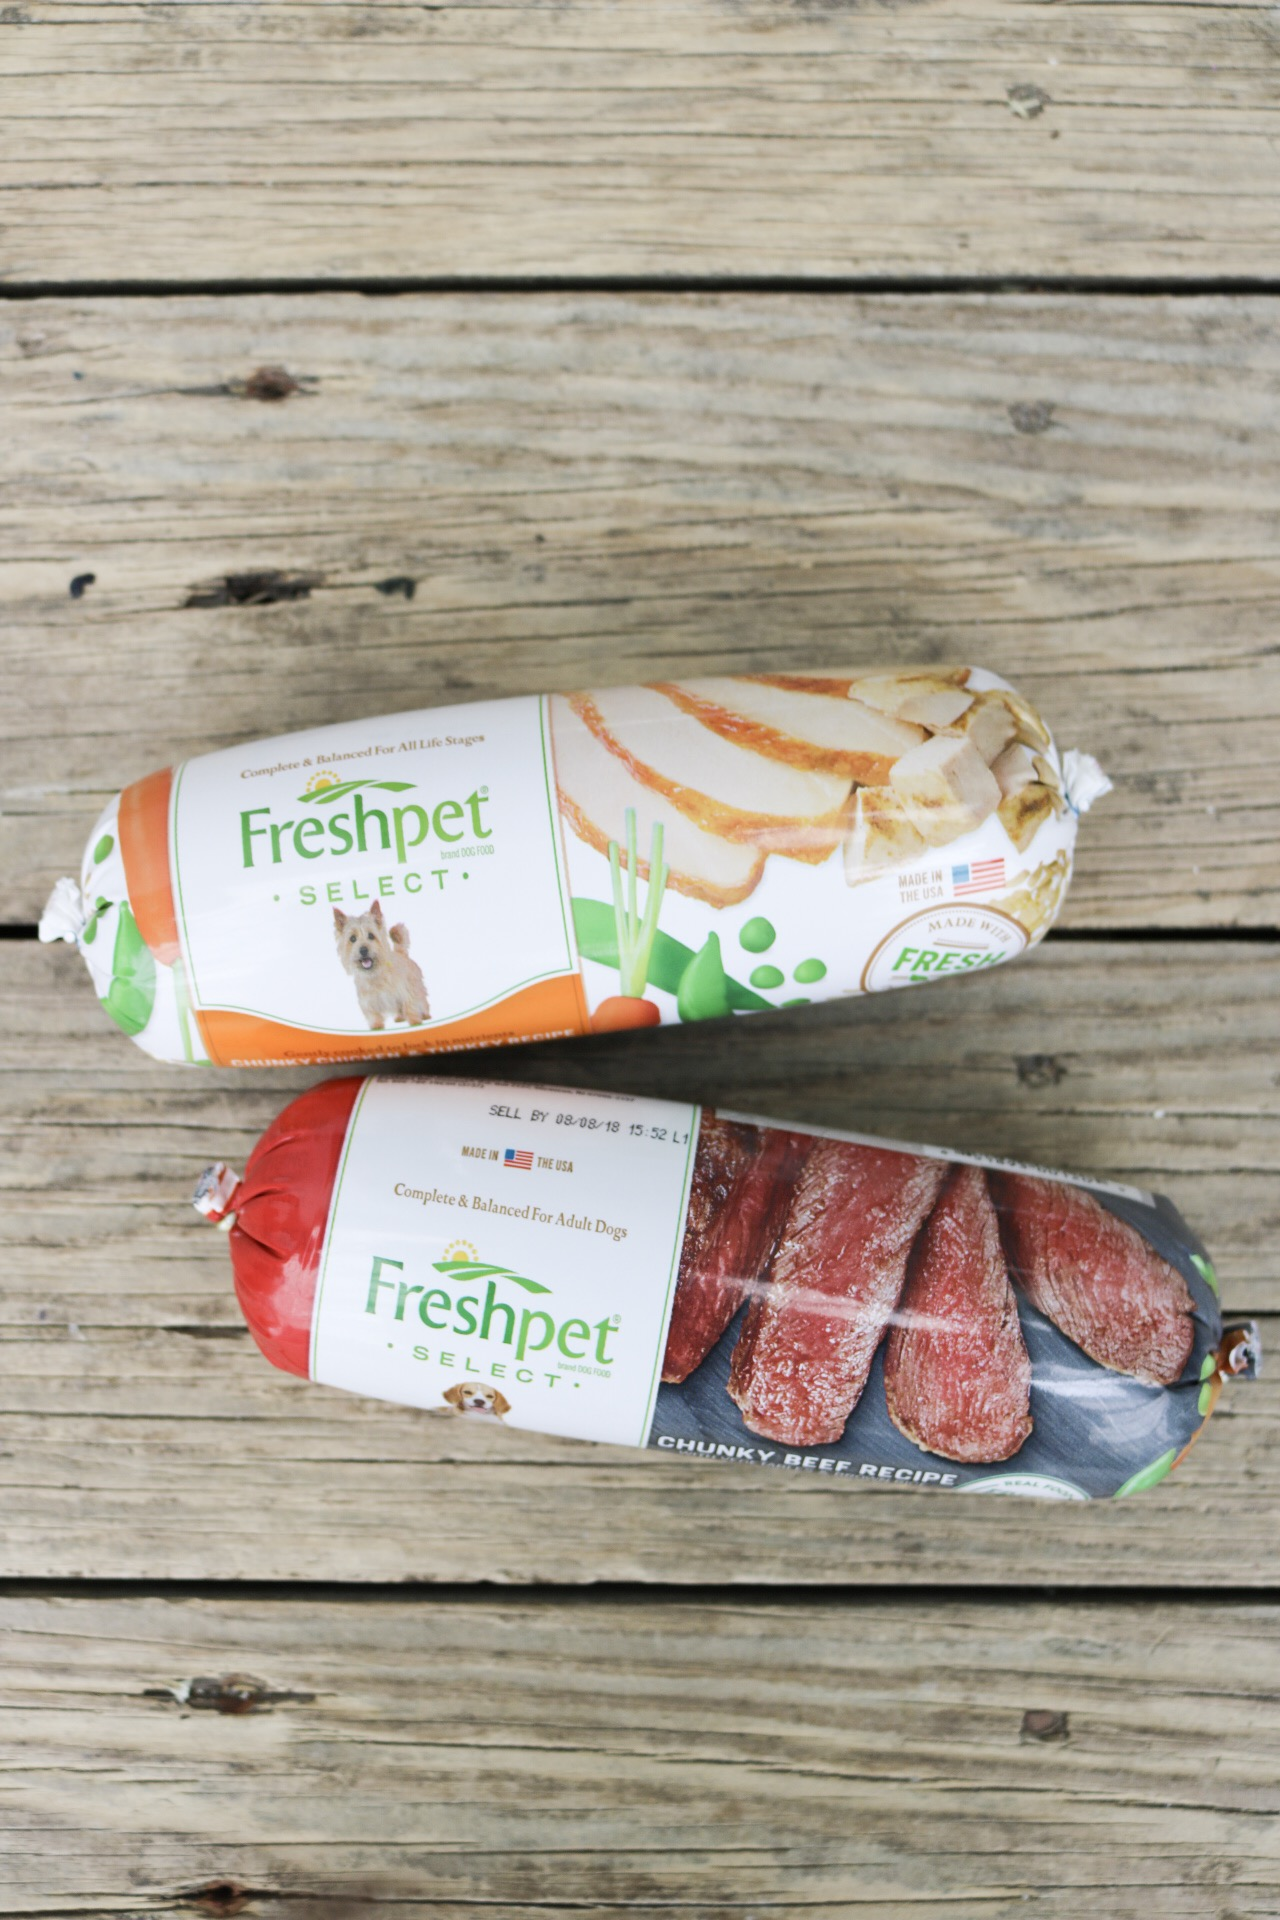 Why to choose Freshpet